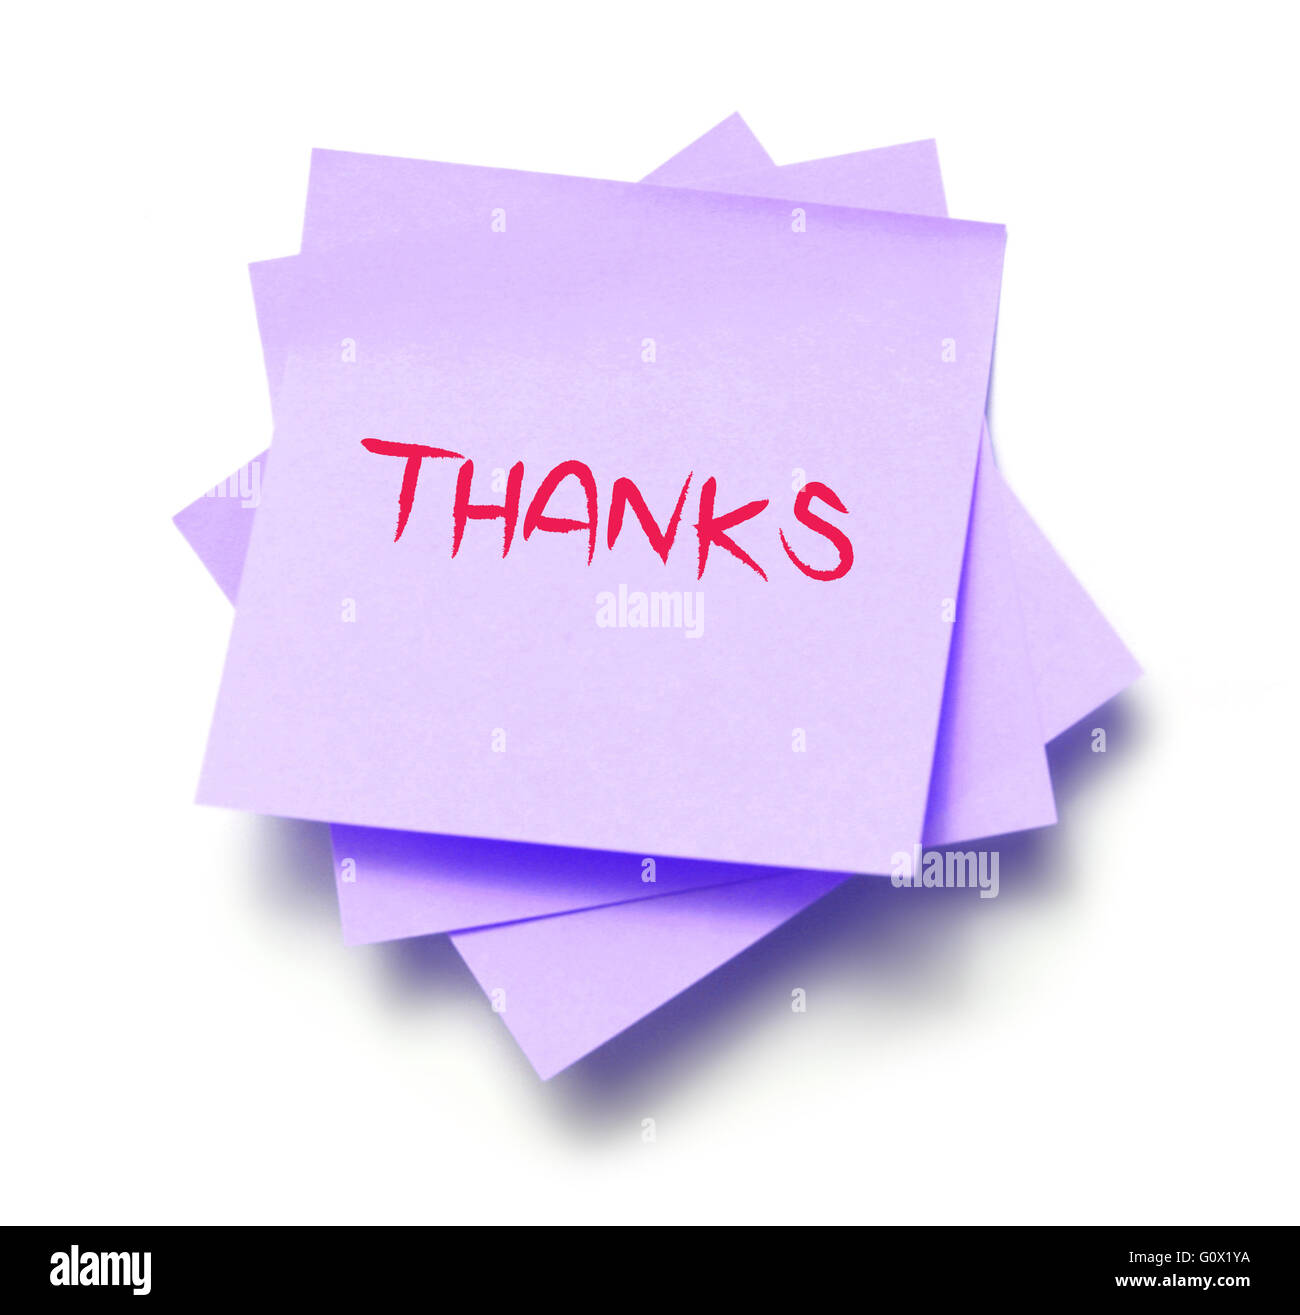 Thanks written on a note - Stock Image